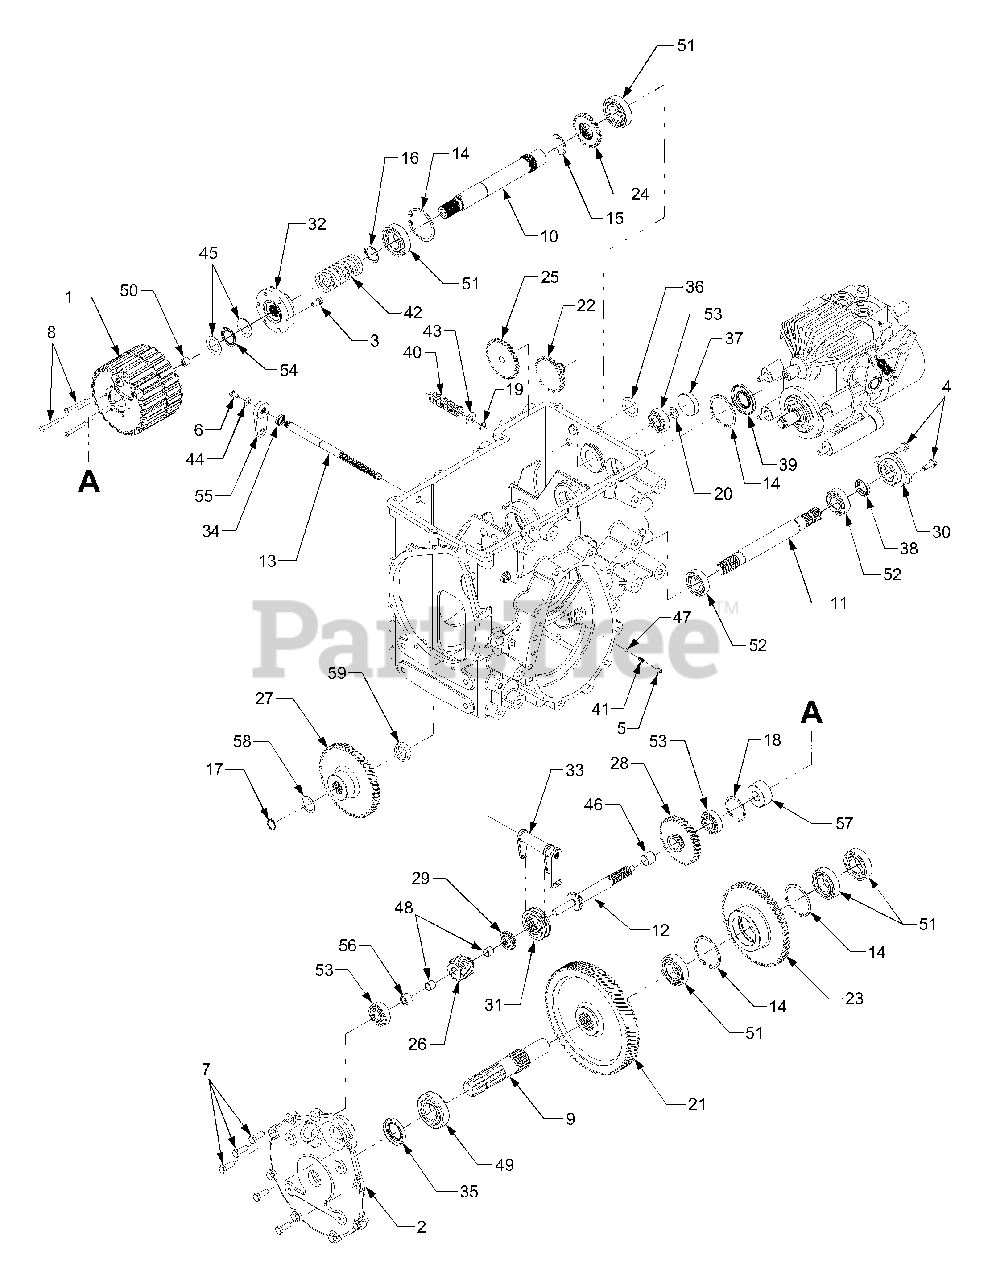 Cub Cadet Parts on the PTO Drive Diagram for 7254 (54AT742